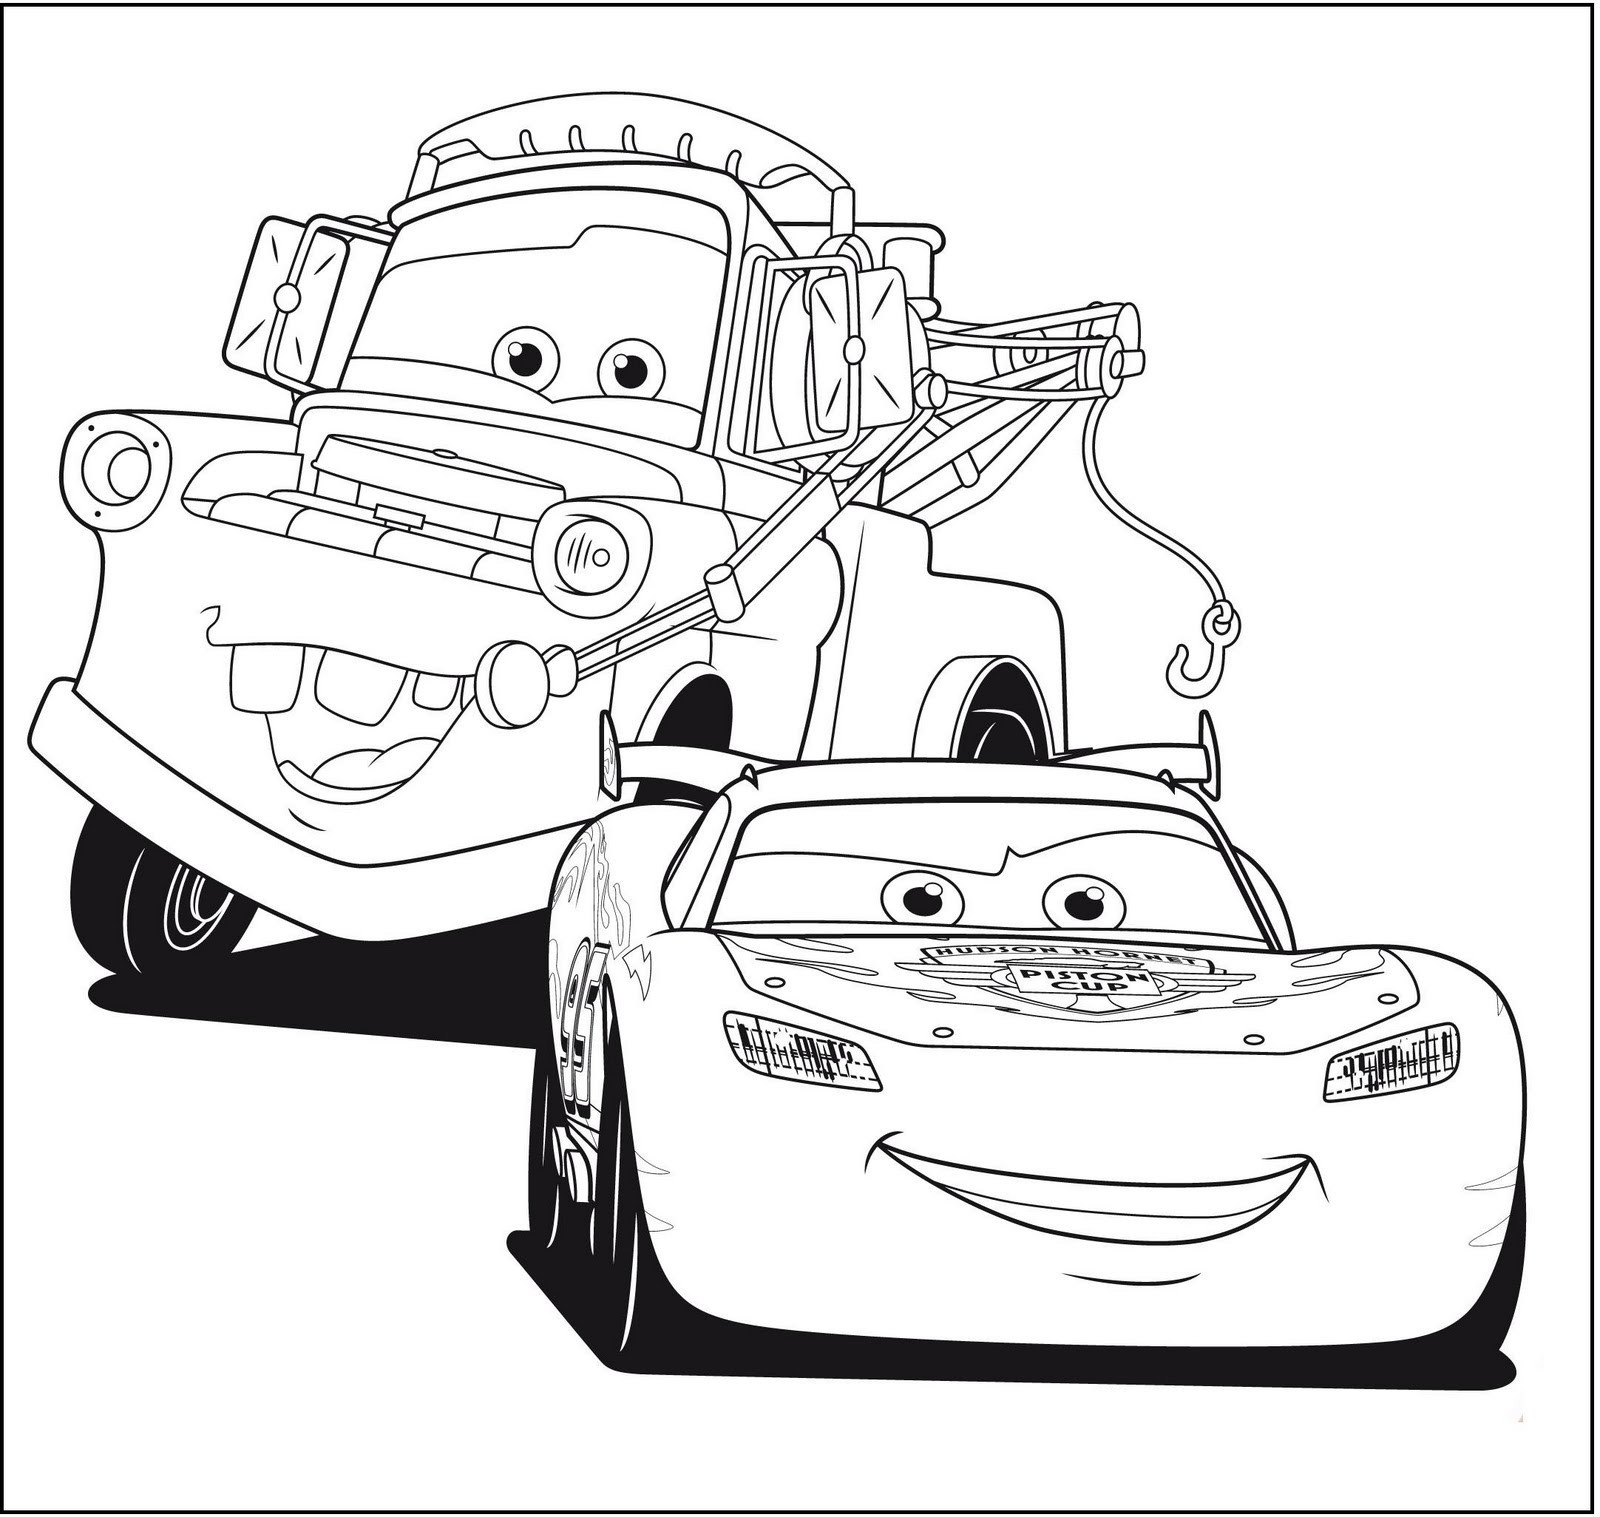 disney cars 2 colouring pictures to print cars the movie coloring pages to print free coloring sheets disney colouring print cars to pictures 2